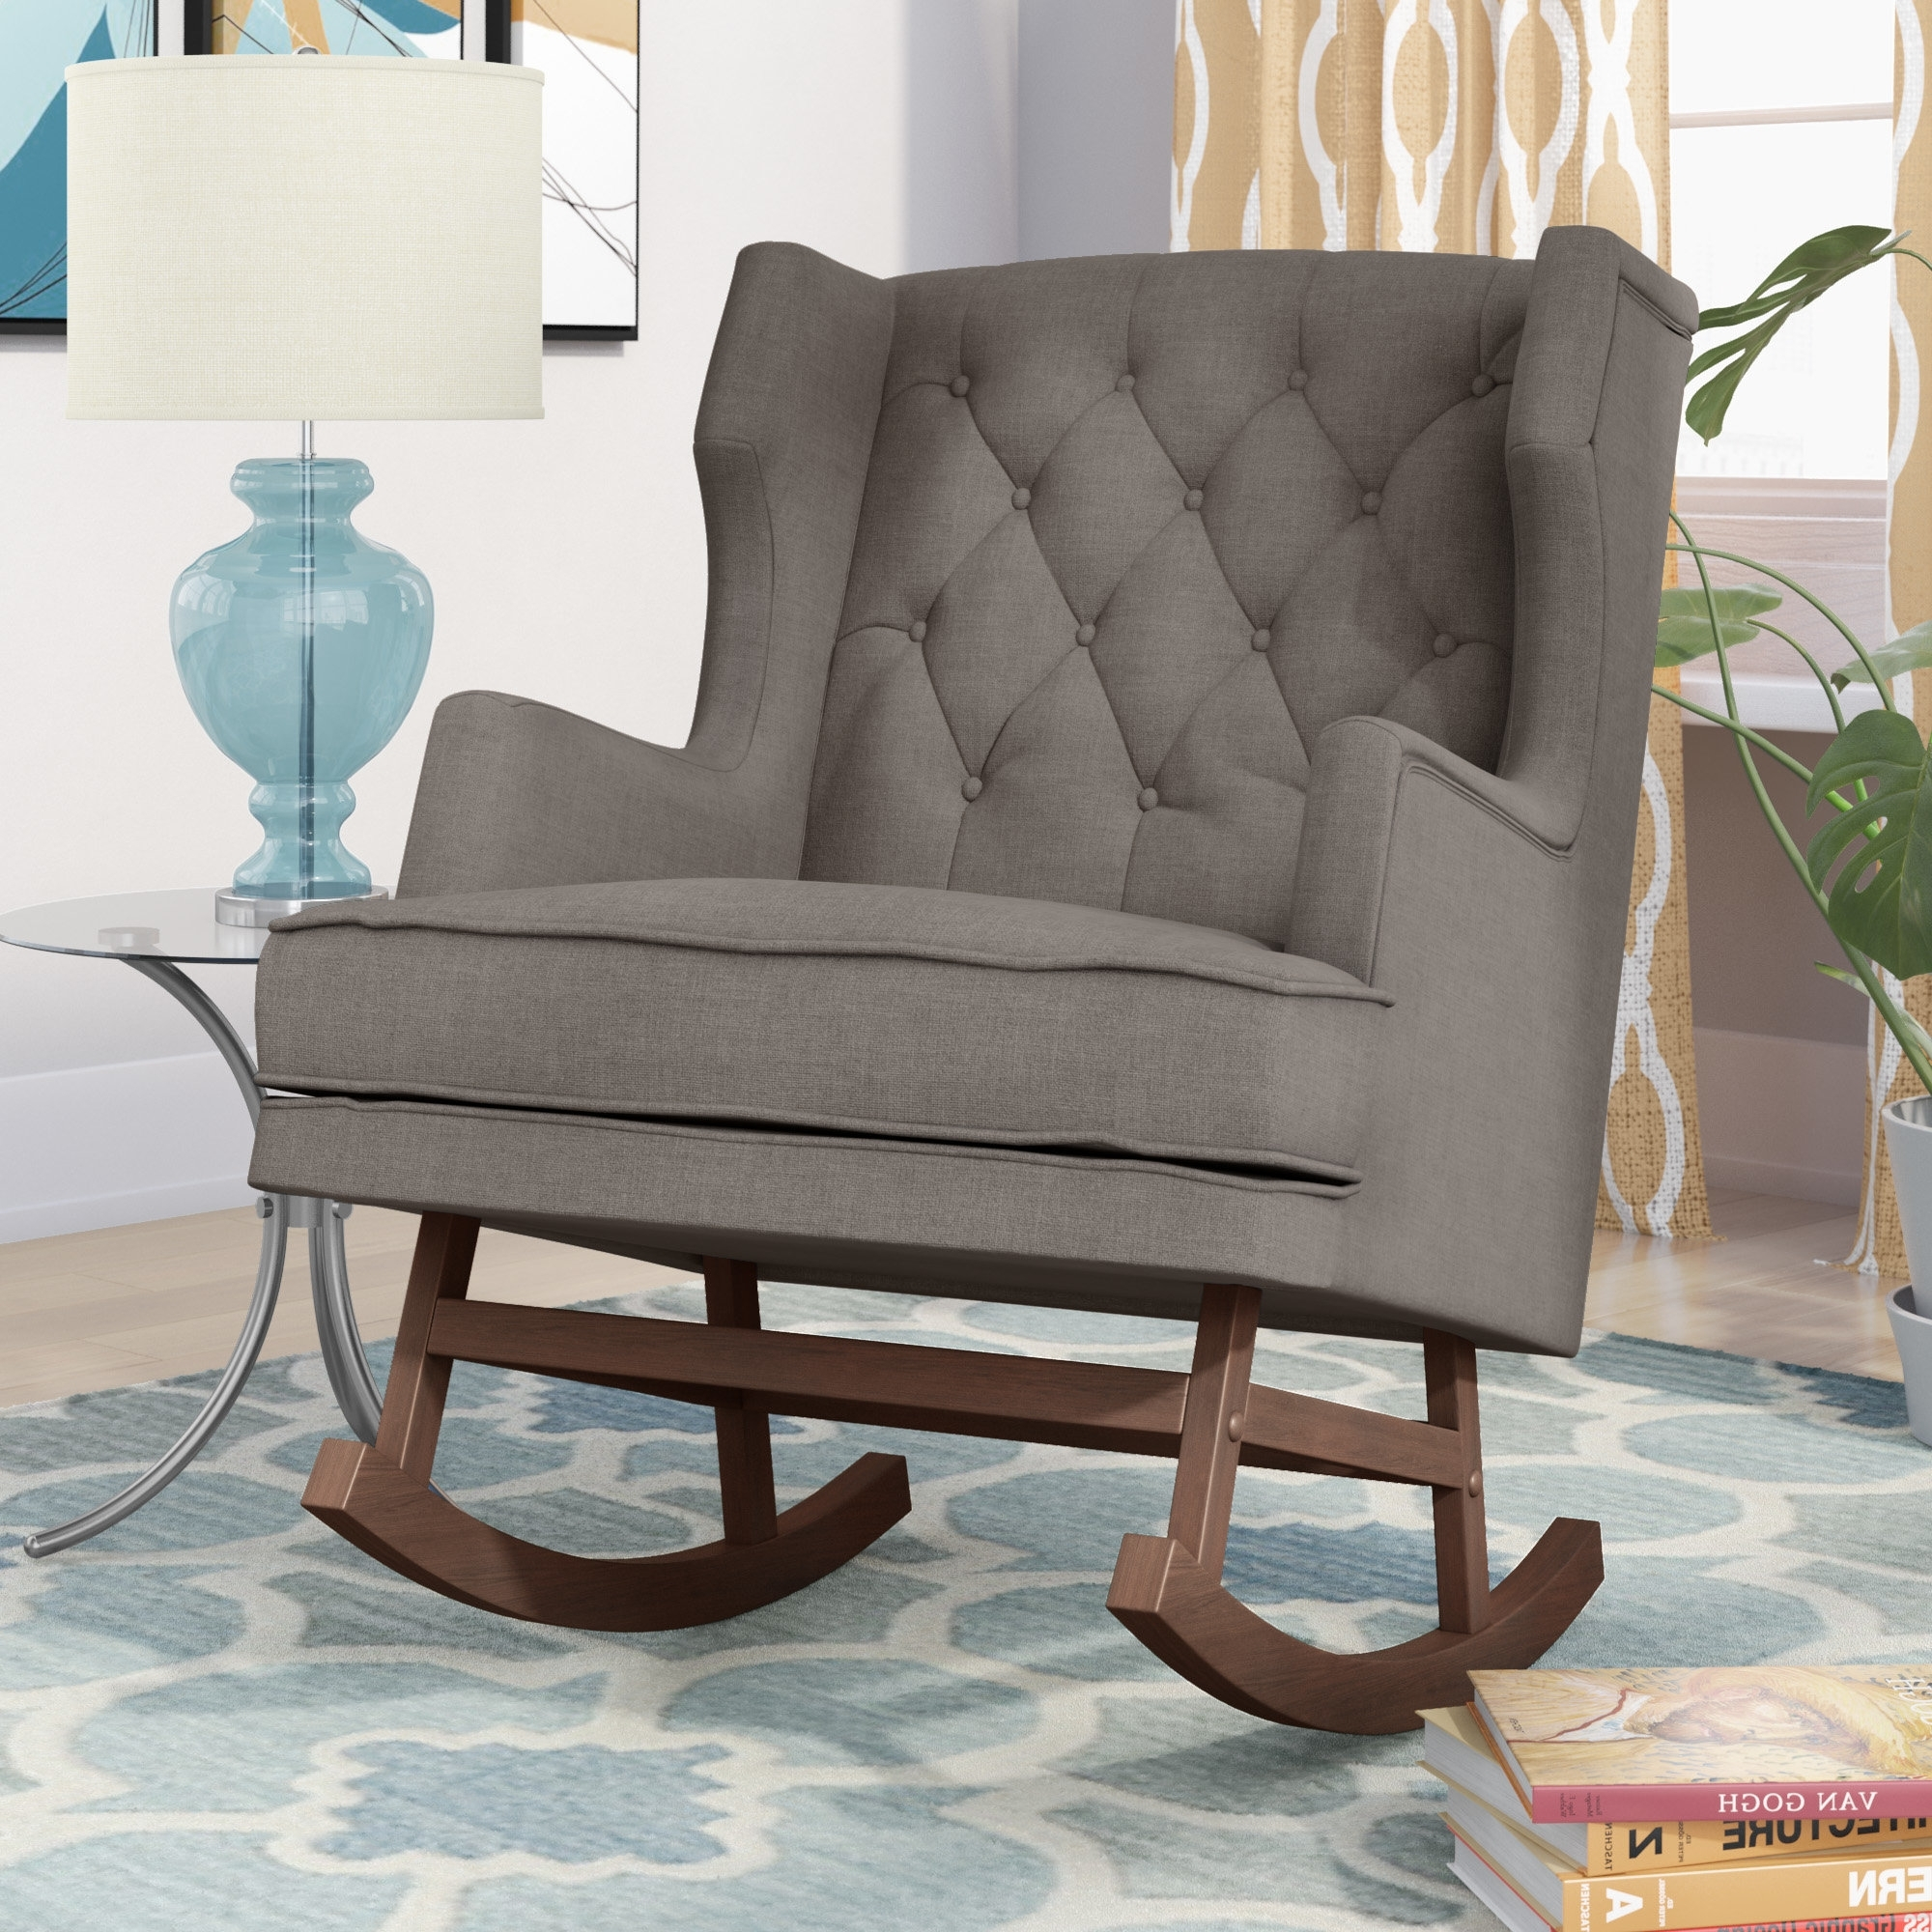 Wayfair Regarding Rocking Chairs For Living Room (View 14 of 15)